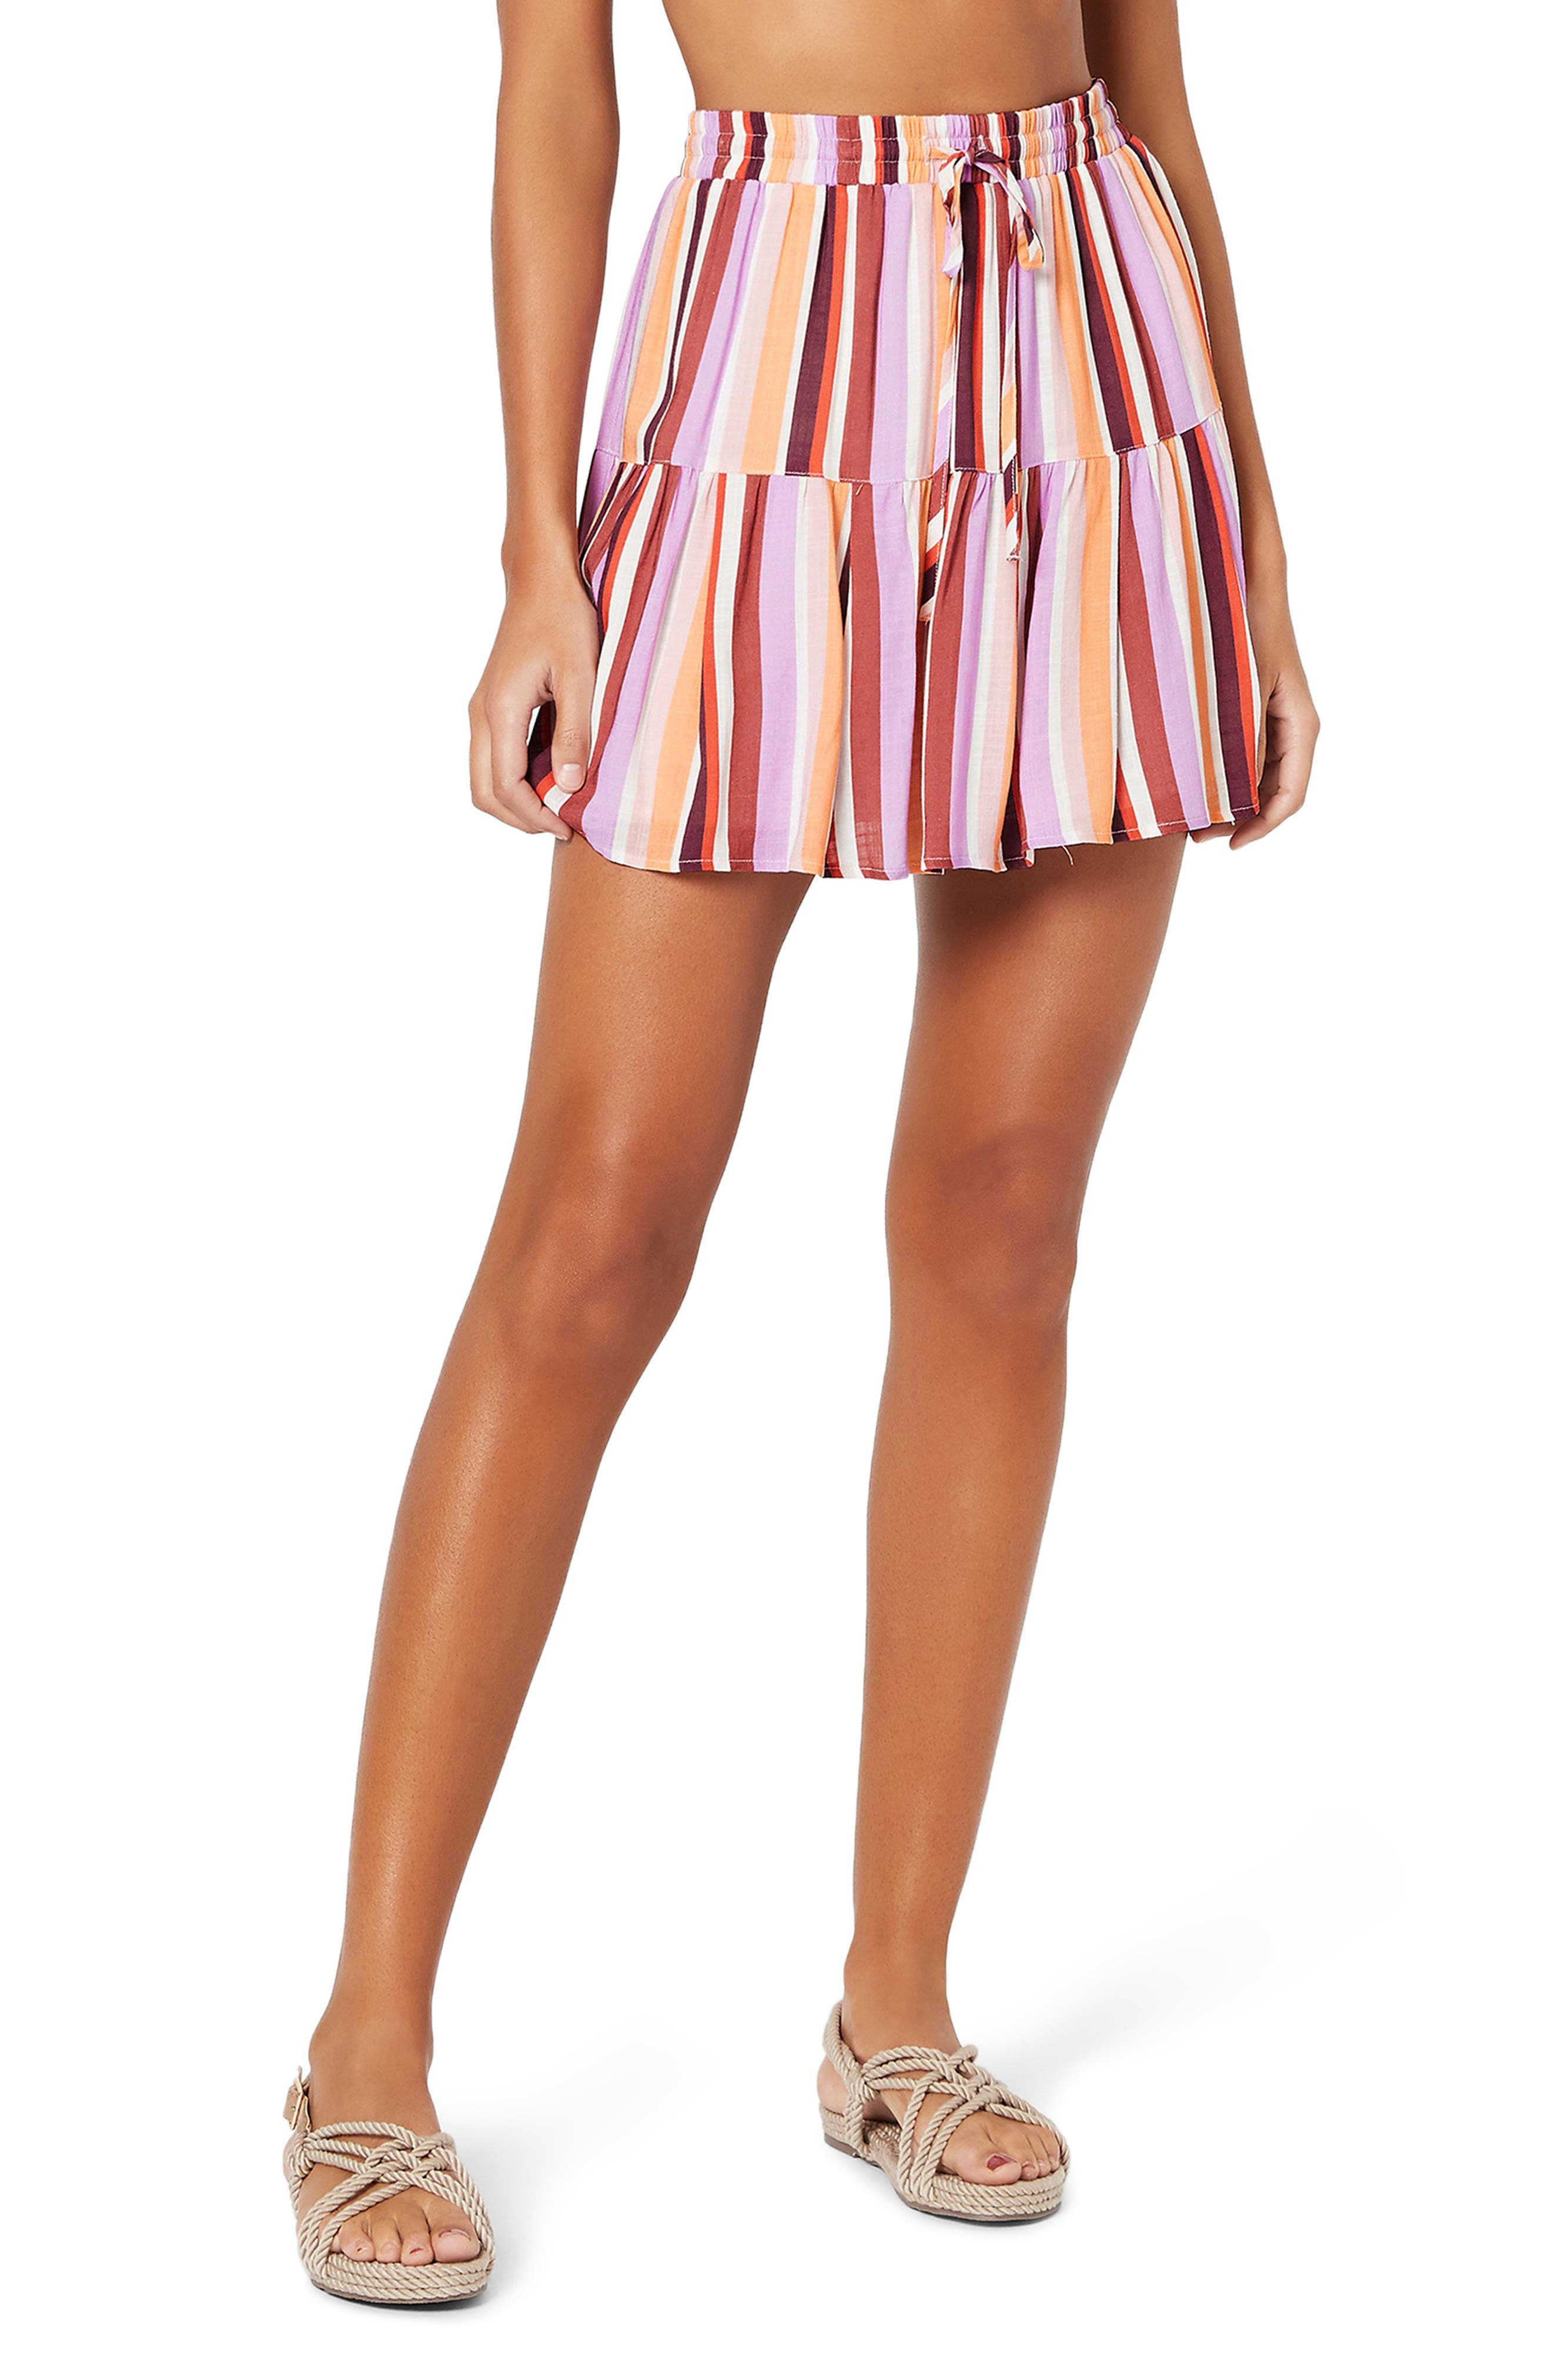 MINKPINK Ilios Tiered Cover-Up Miniskirt | Nordstrom